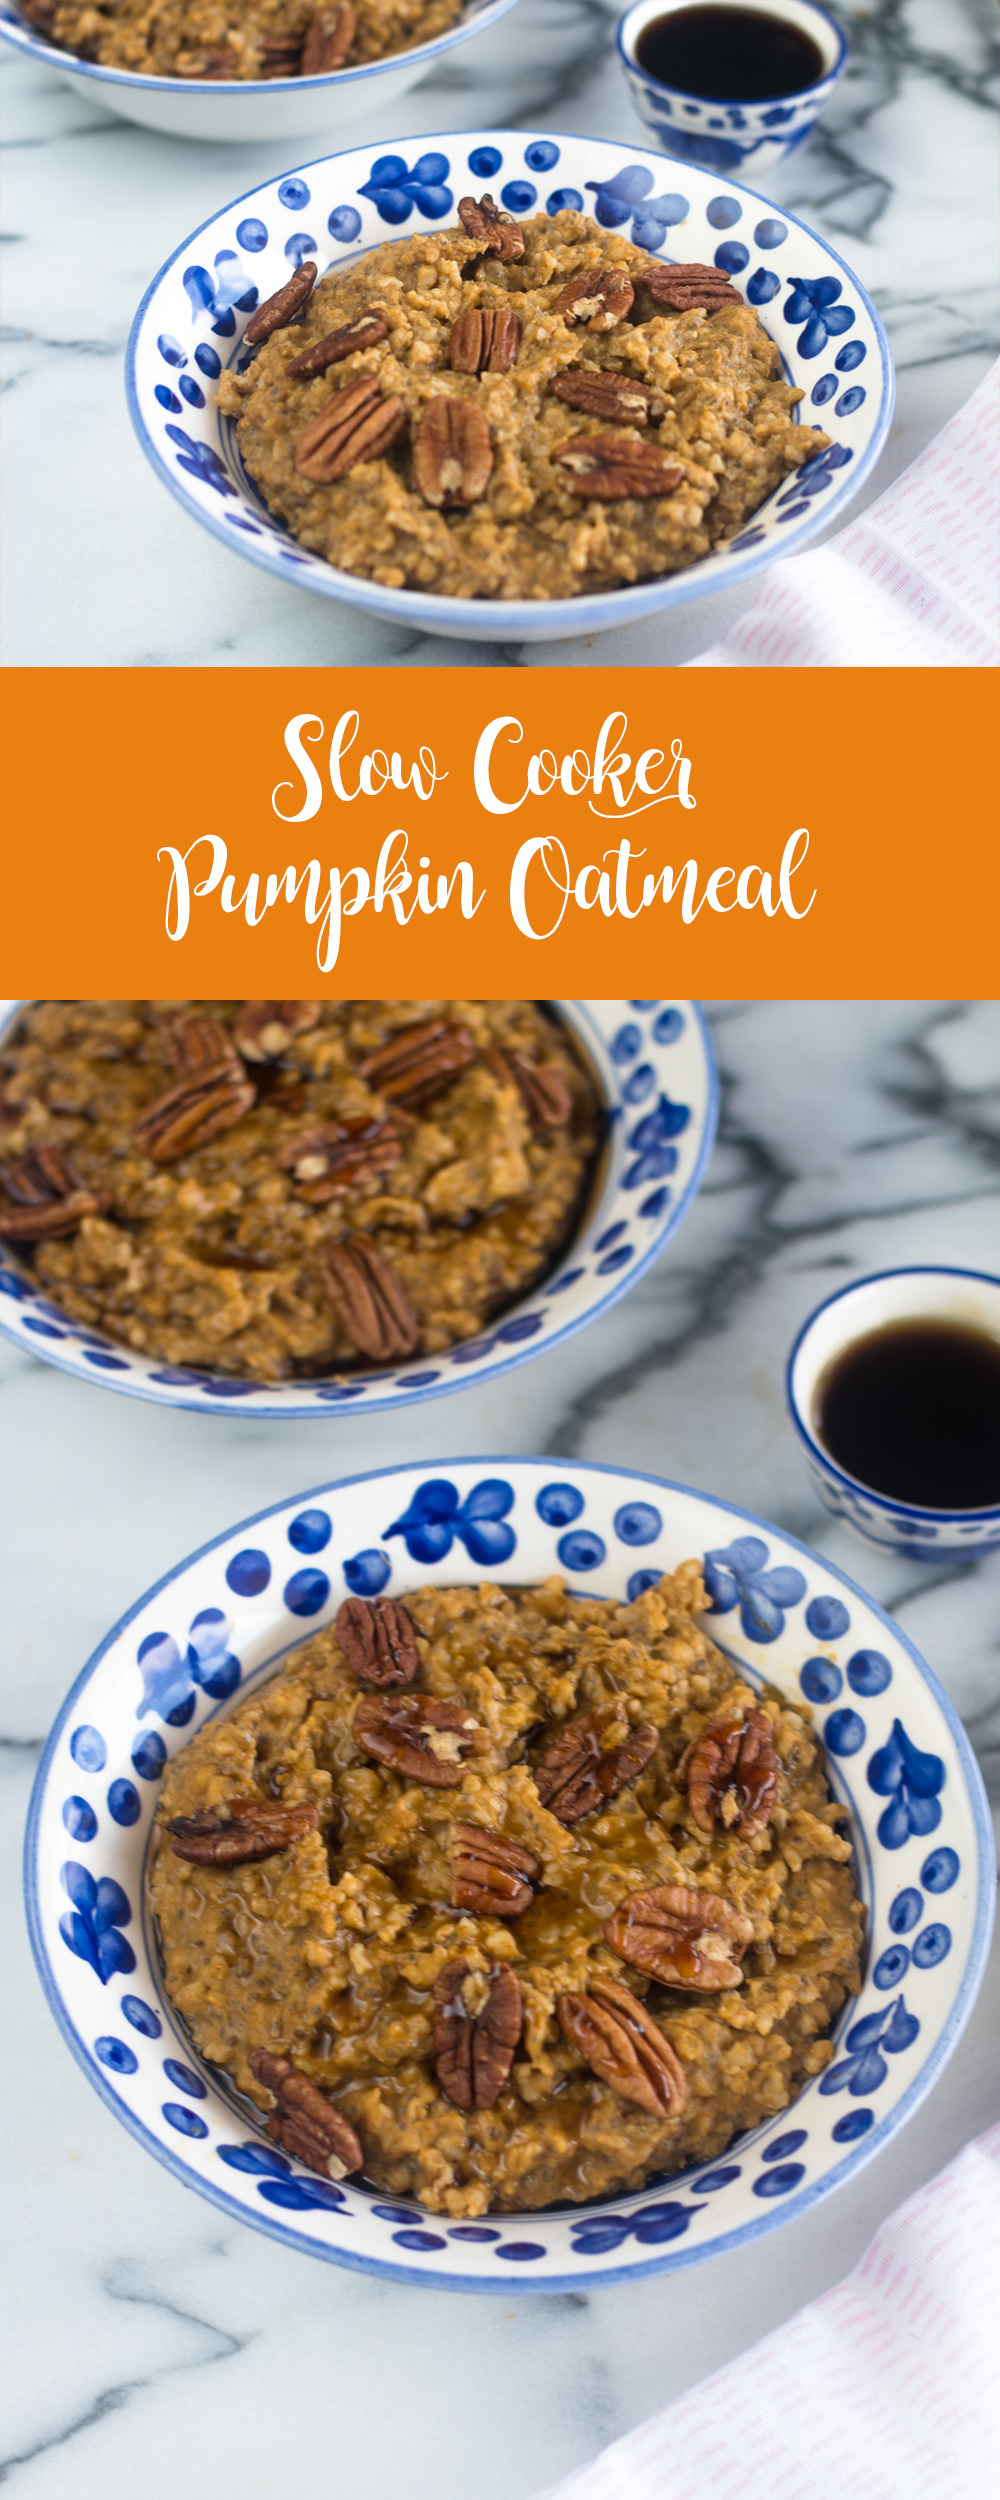 This Slow Cooker Pumpkin Oatmeal is packed with fall flavor! Of course there is pumpkin, but lots of warm, fall spices like cinnamon  and pumpkin pie spice. This oatmeal is warm, cozy and perfect for enjoying on a cool fall morning.